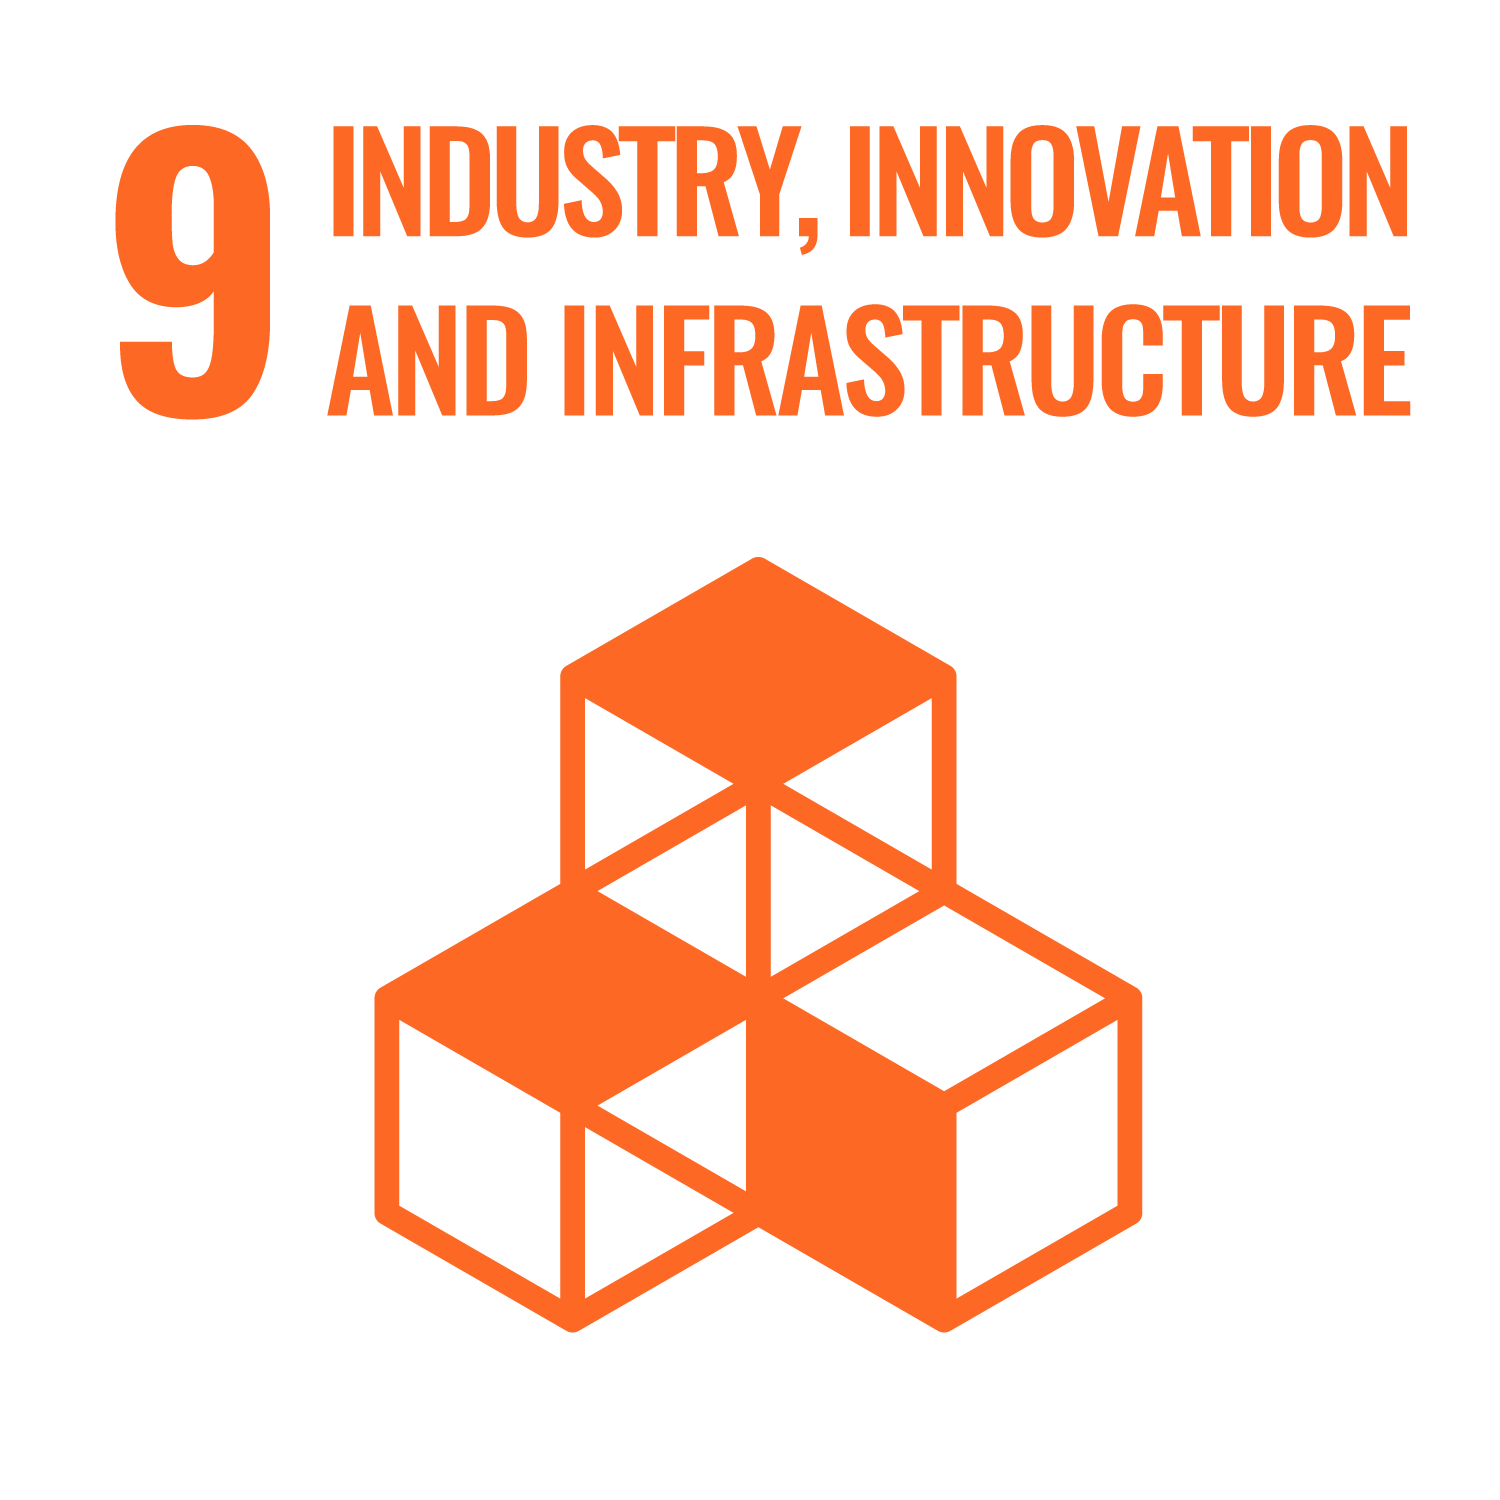 9_Industry_Innovation_And_Infrastructure